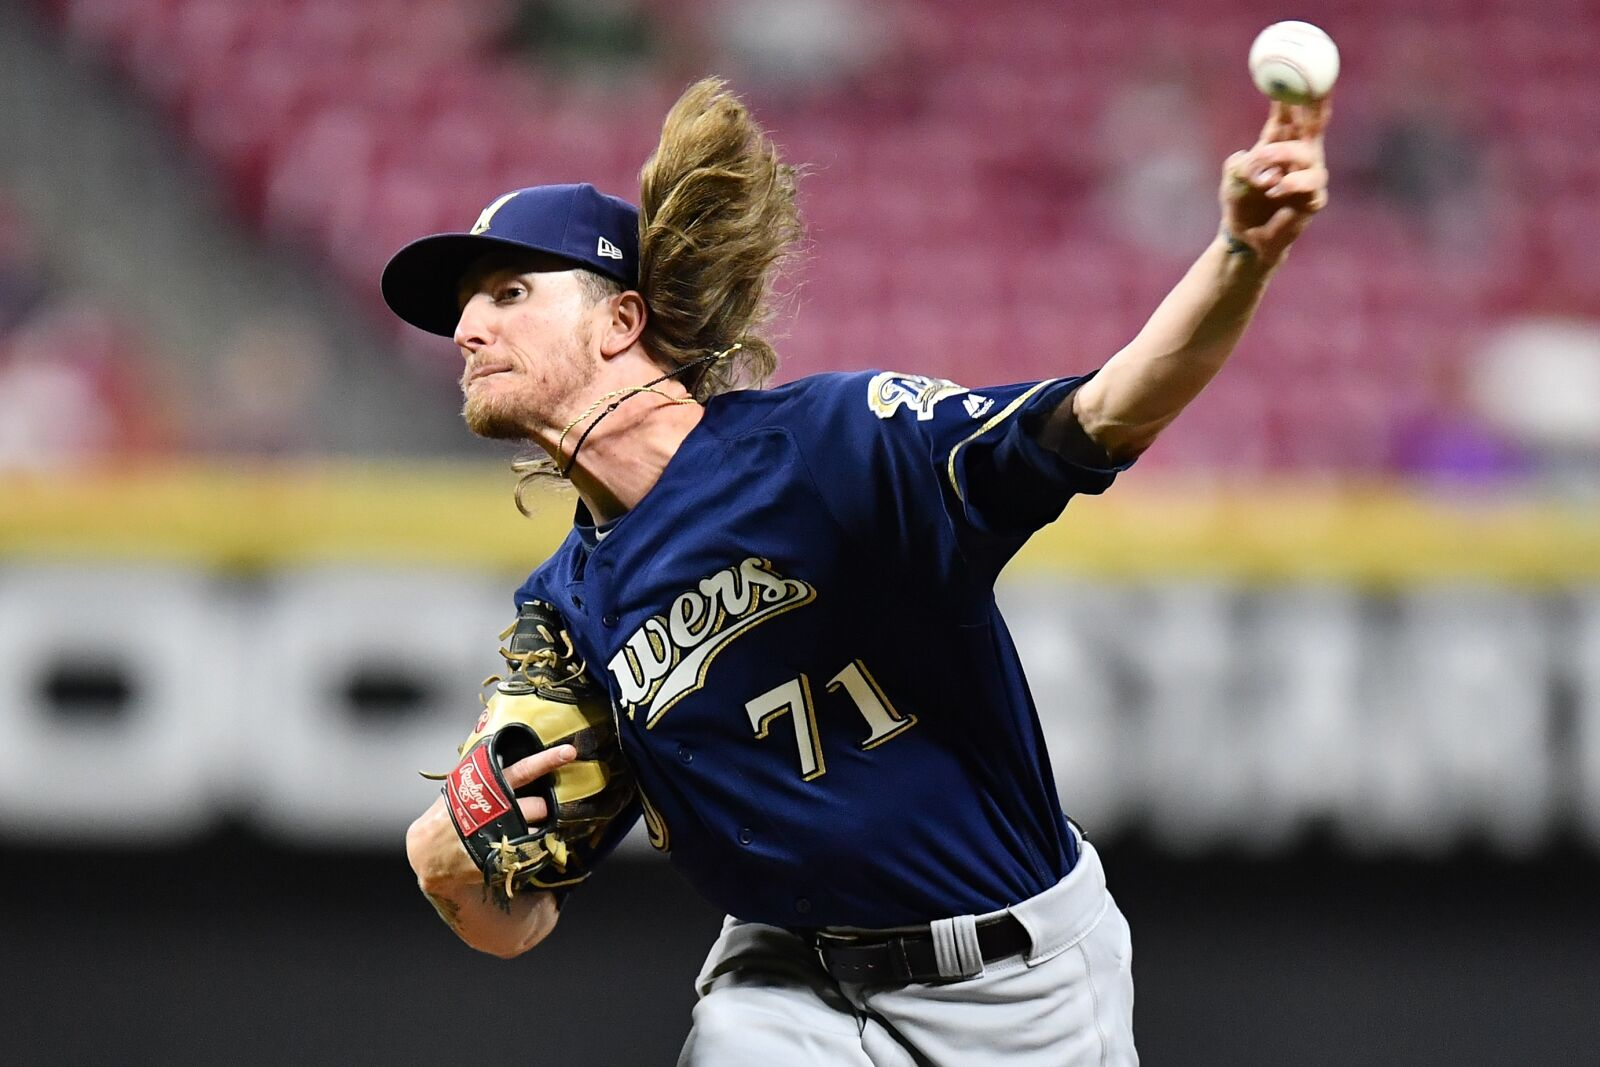 Milwaukee Brewers: Should they trade Josh Hader this winter?